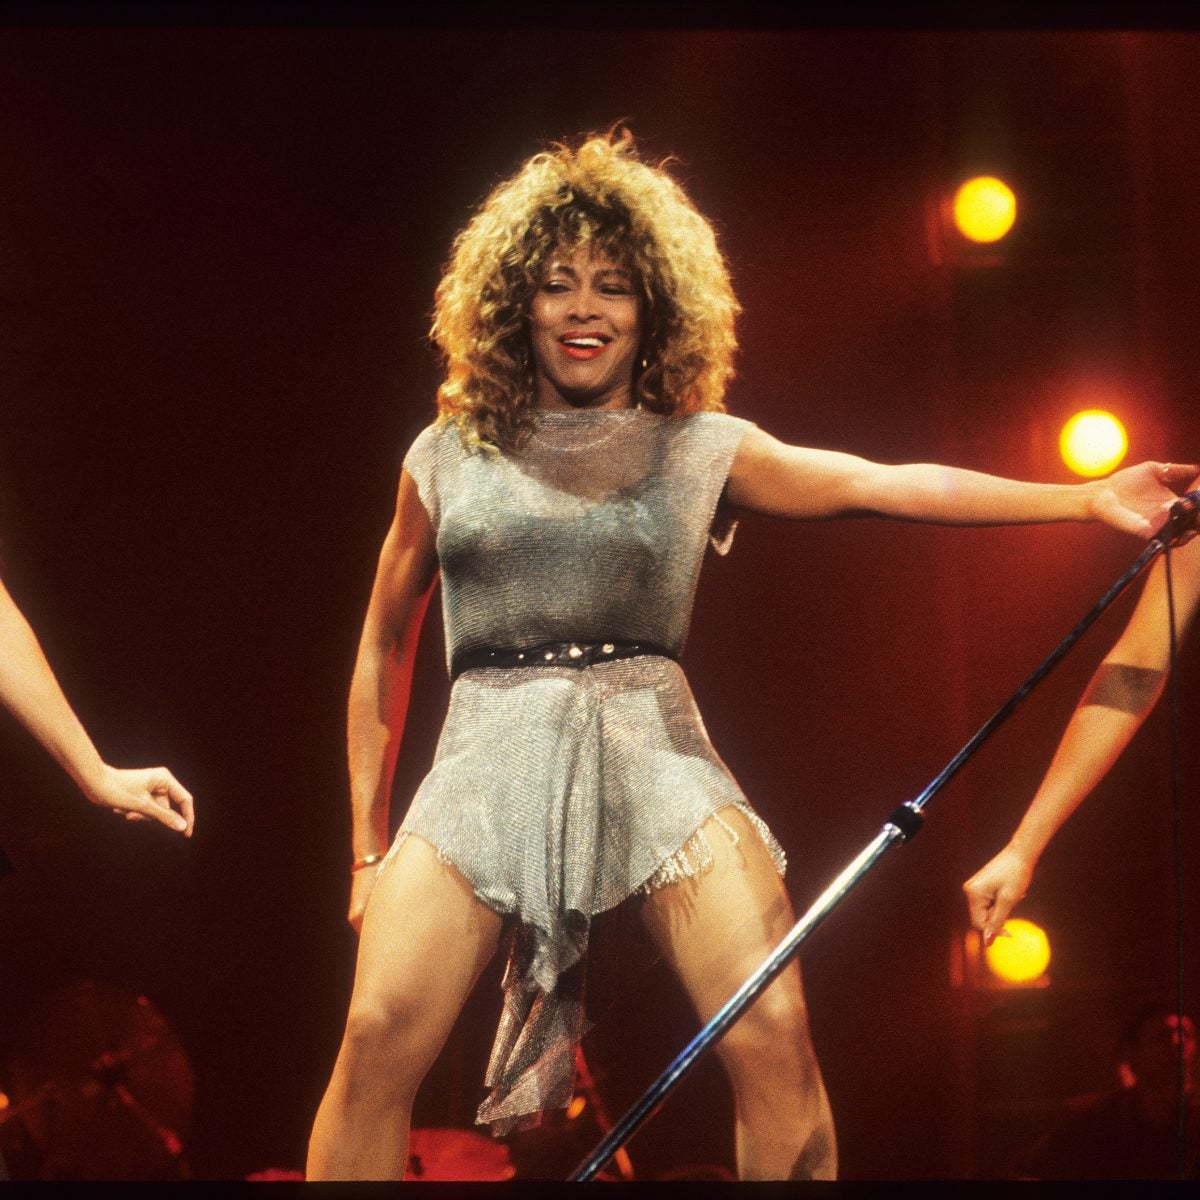 Tina Turner, Jay-Z Among 2021 Rock & Roll Hall of Fame Inductees